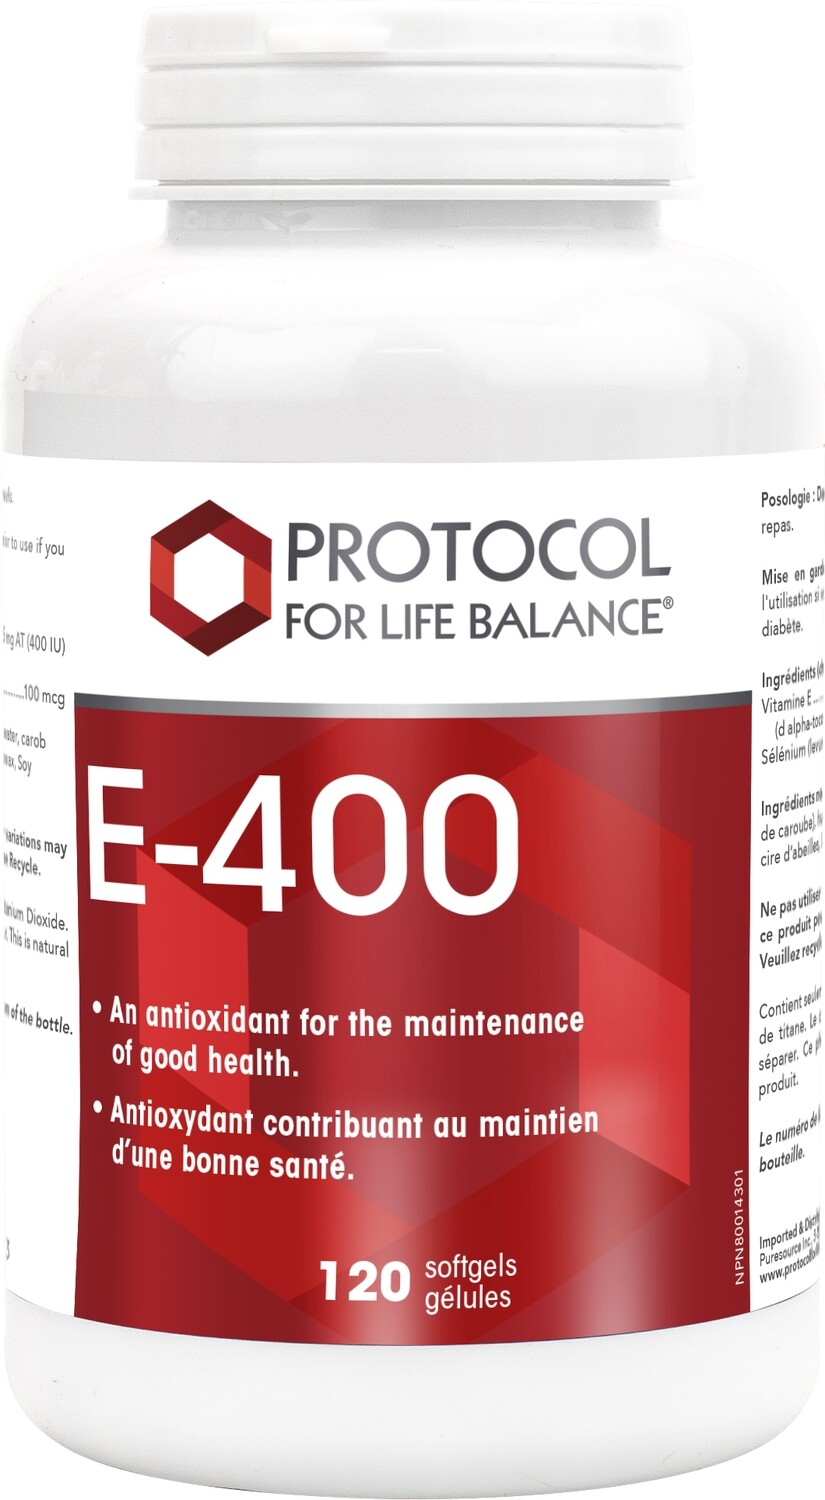 E-400 by Protocol for Life Balance